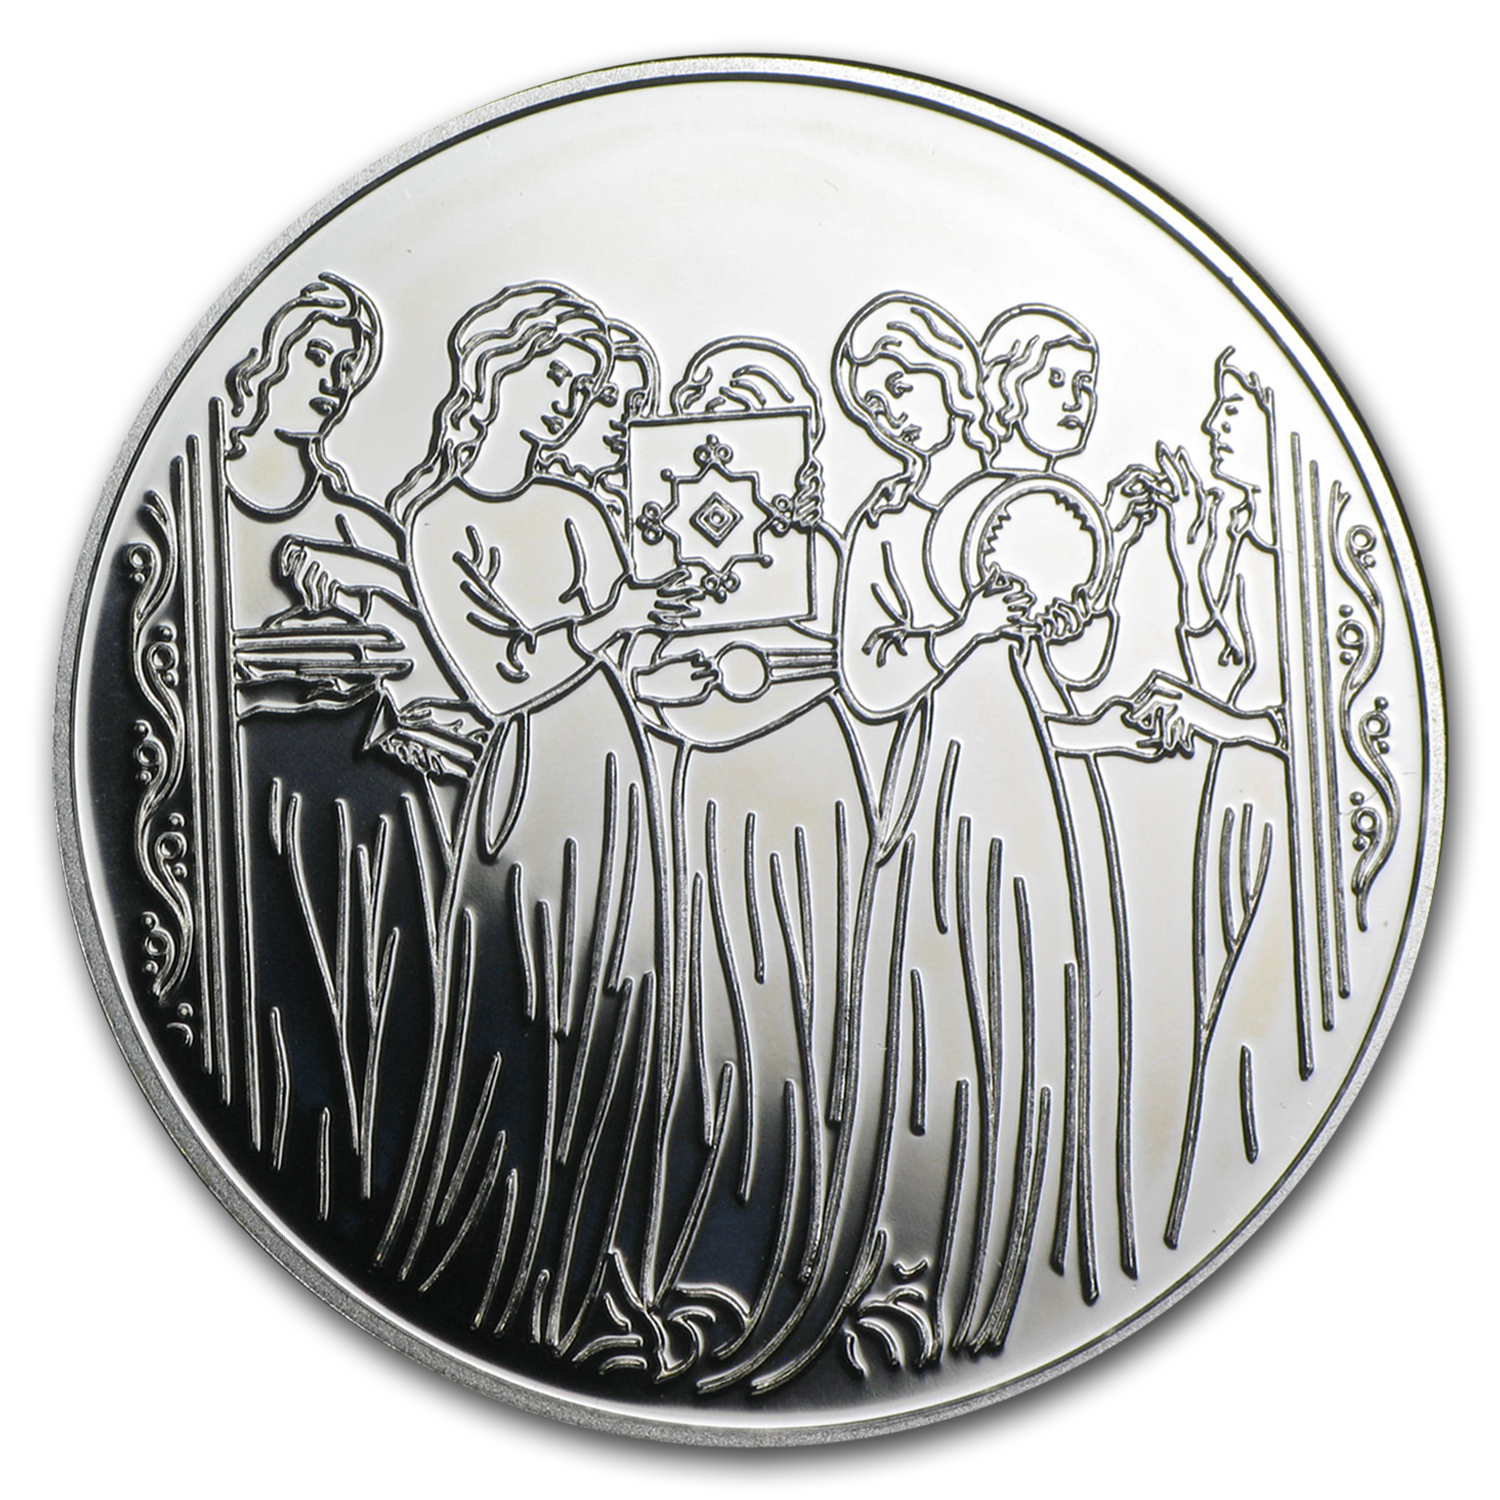 1996 Israel Miriam & the Women Proof Silver 2 NIS Coin w/Box